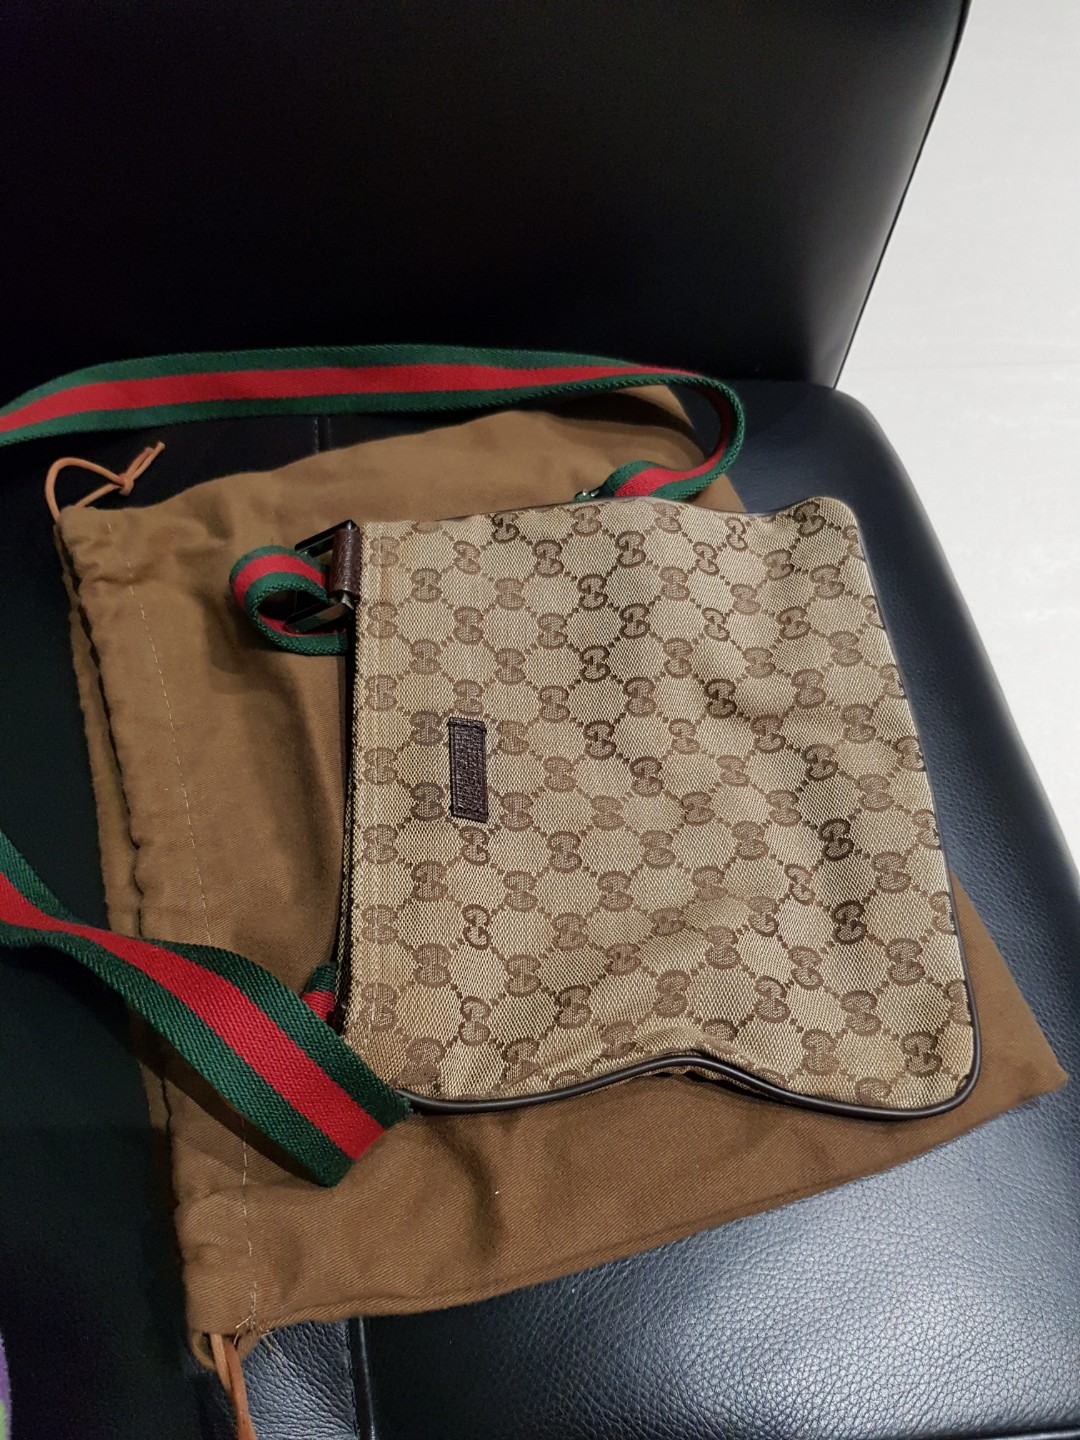 Reserved) Gucci sling bag - authentic, Women s Fashion, Bags ... 1486db71d1